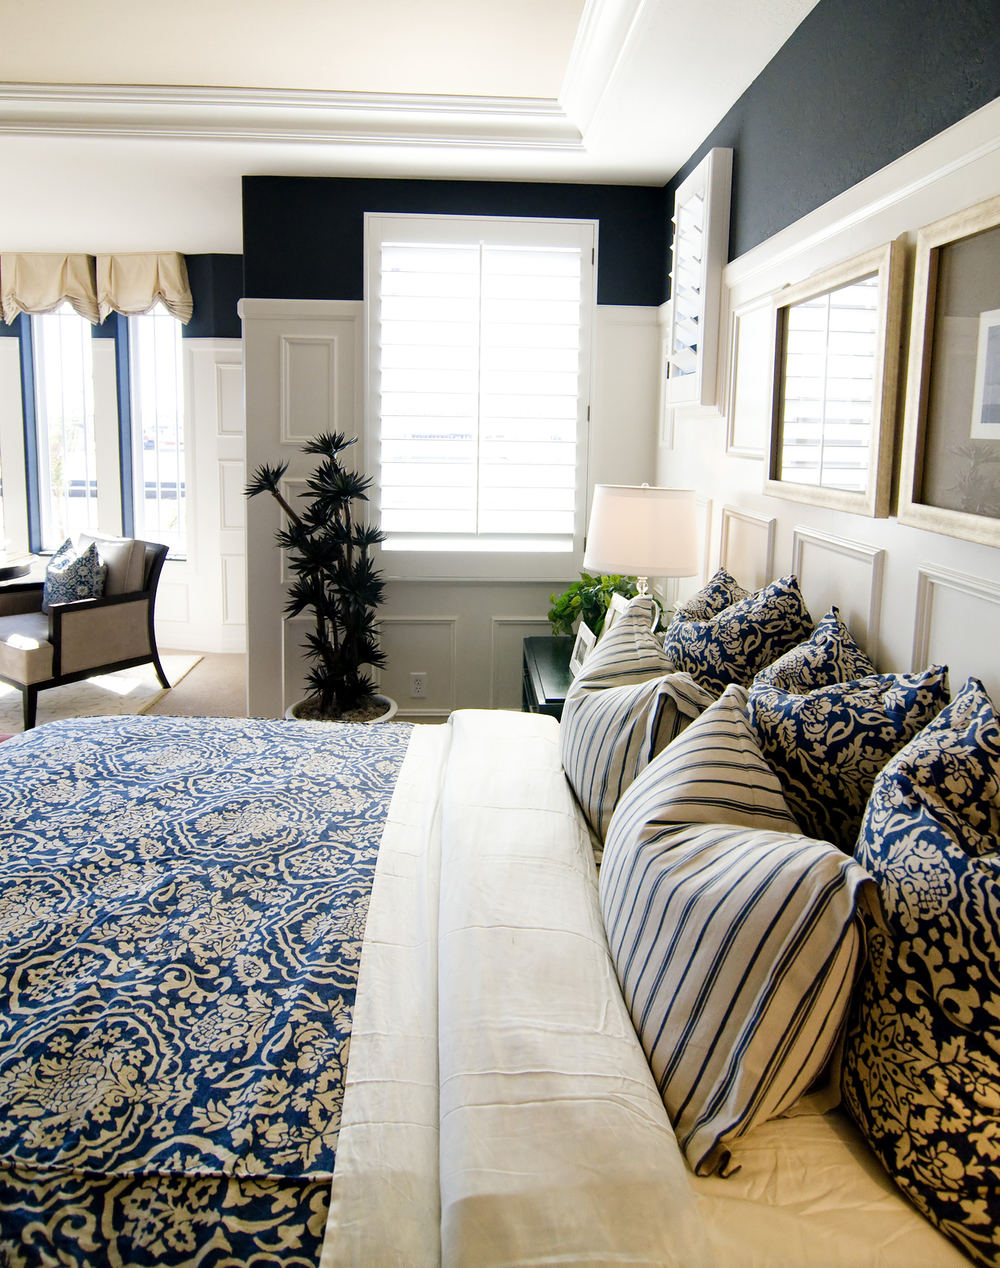 bigstock-Beautifully-designed-bedroom-i-16221839.jpg